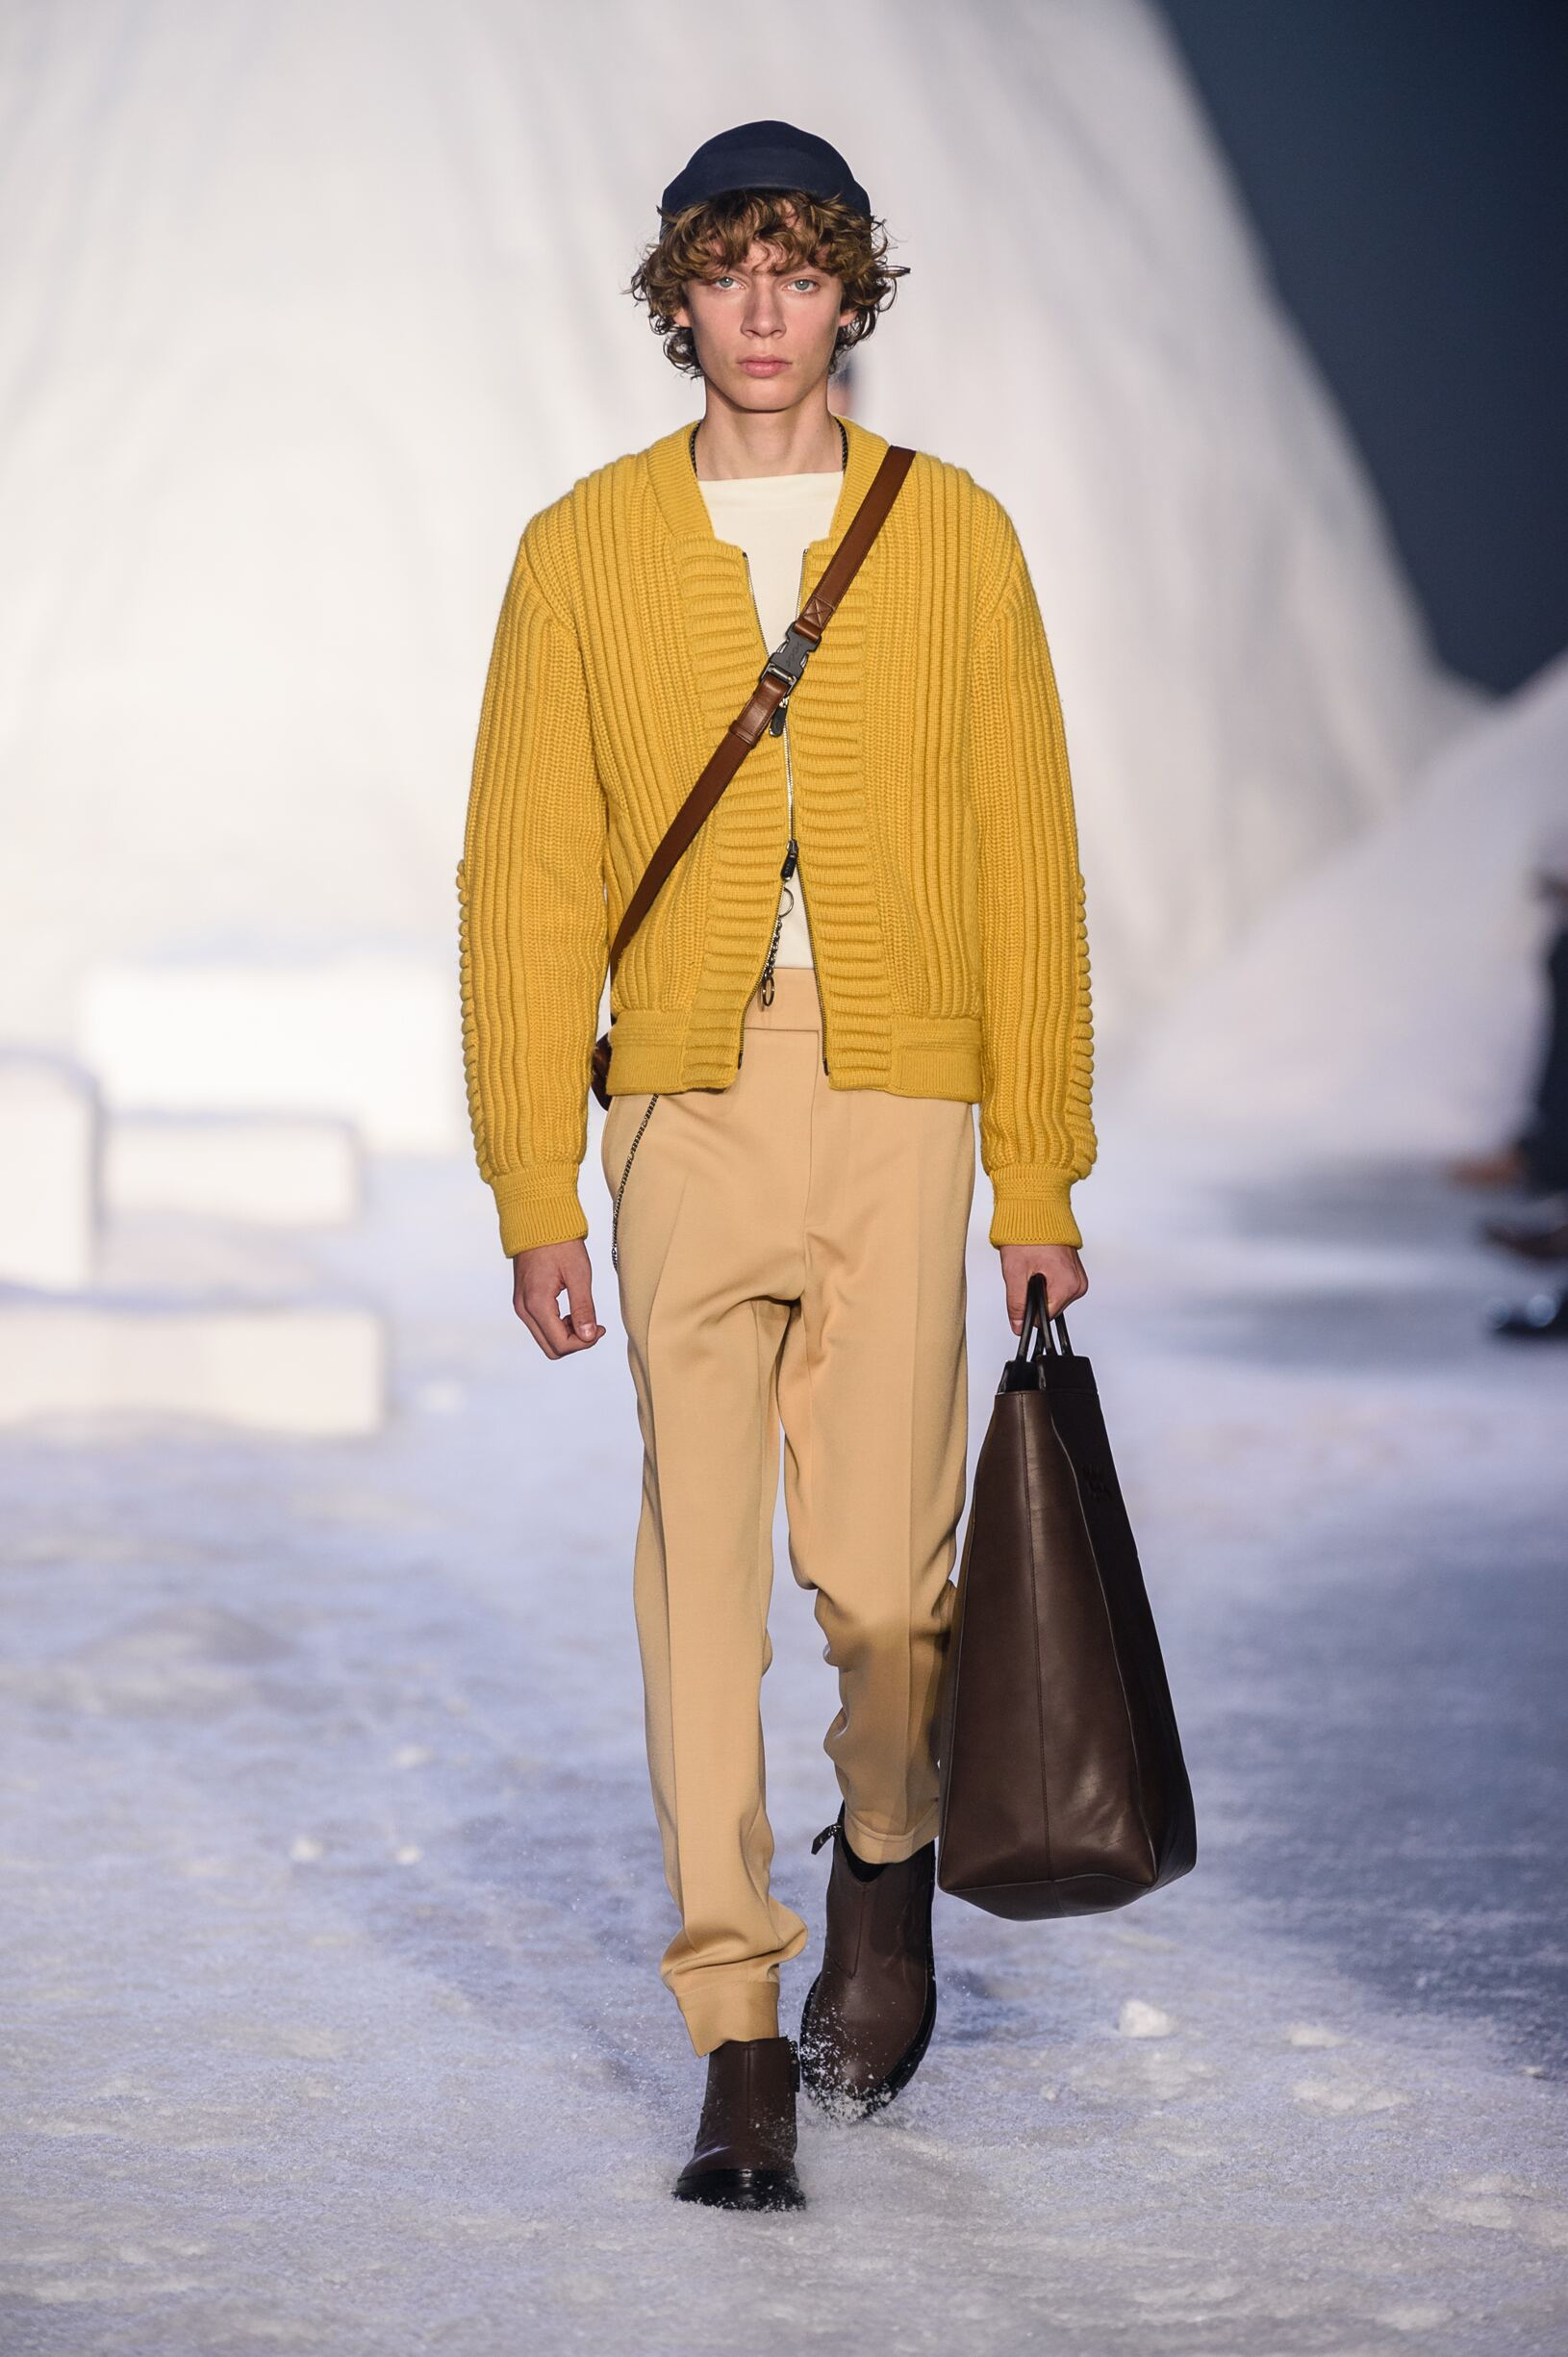 Runway Ermenegildo Zegna Couture Fall Winter 2018 Men's Collection Milan Fashion Week